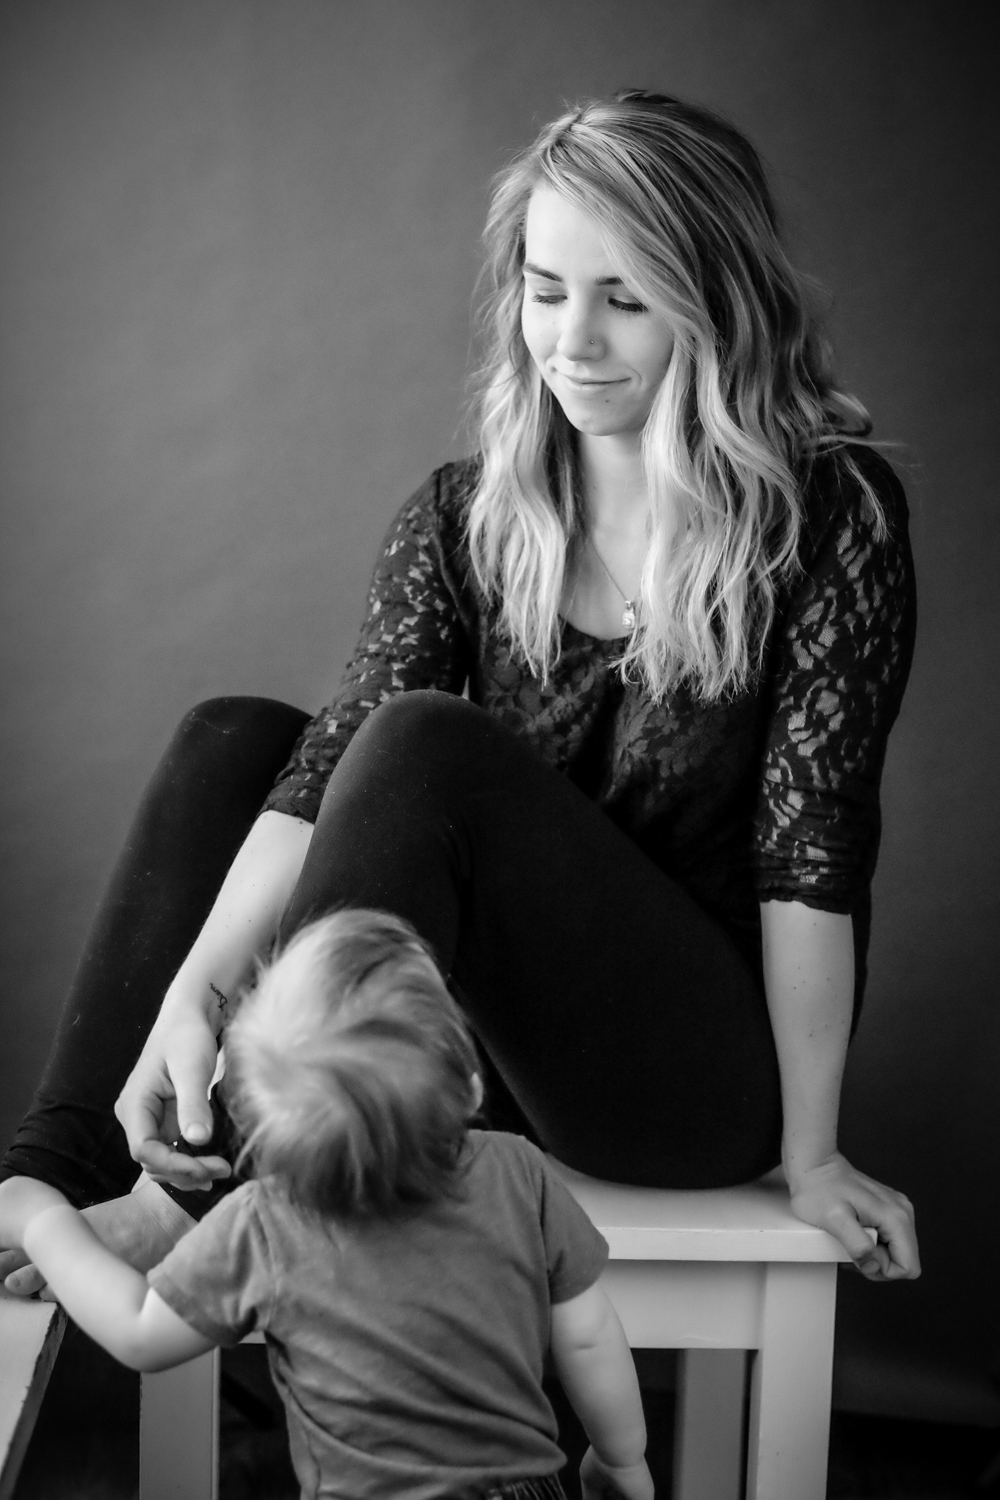 Portrait of a mother and her son - 4 Tips for Helping People Feel Comfortable During Their Portrait Session